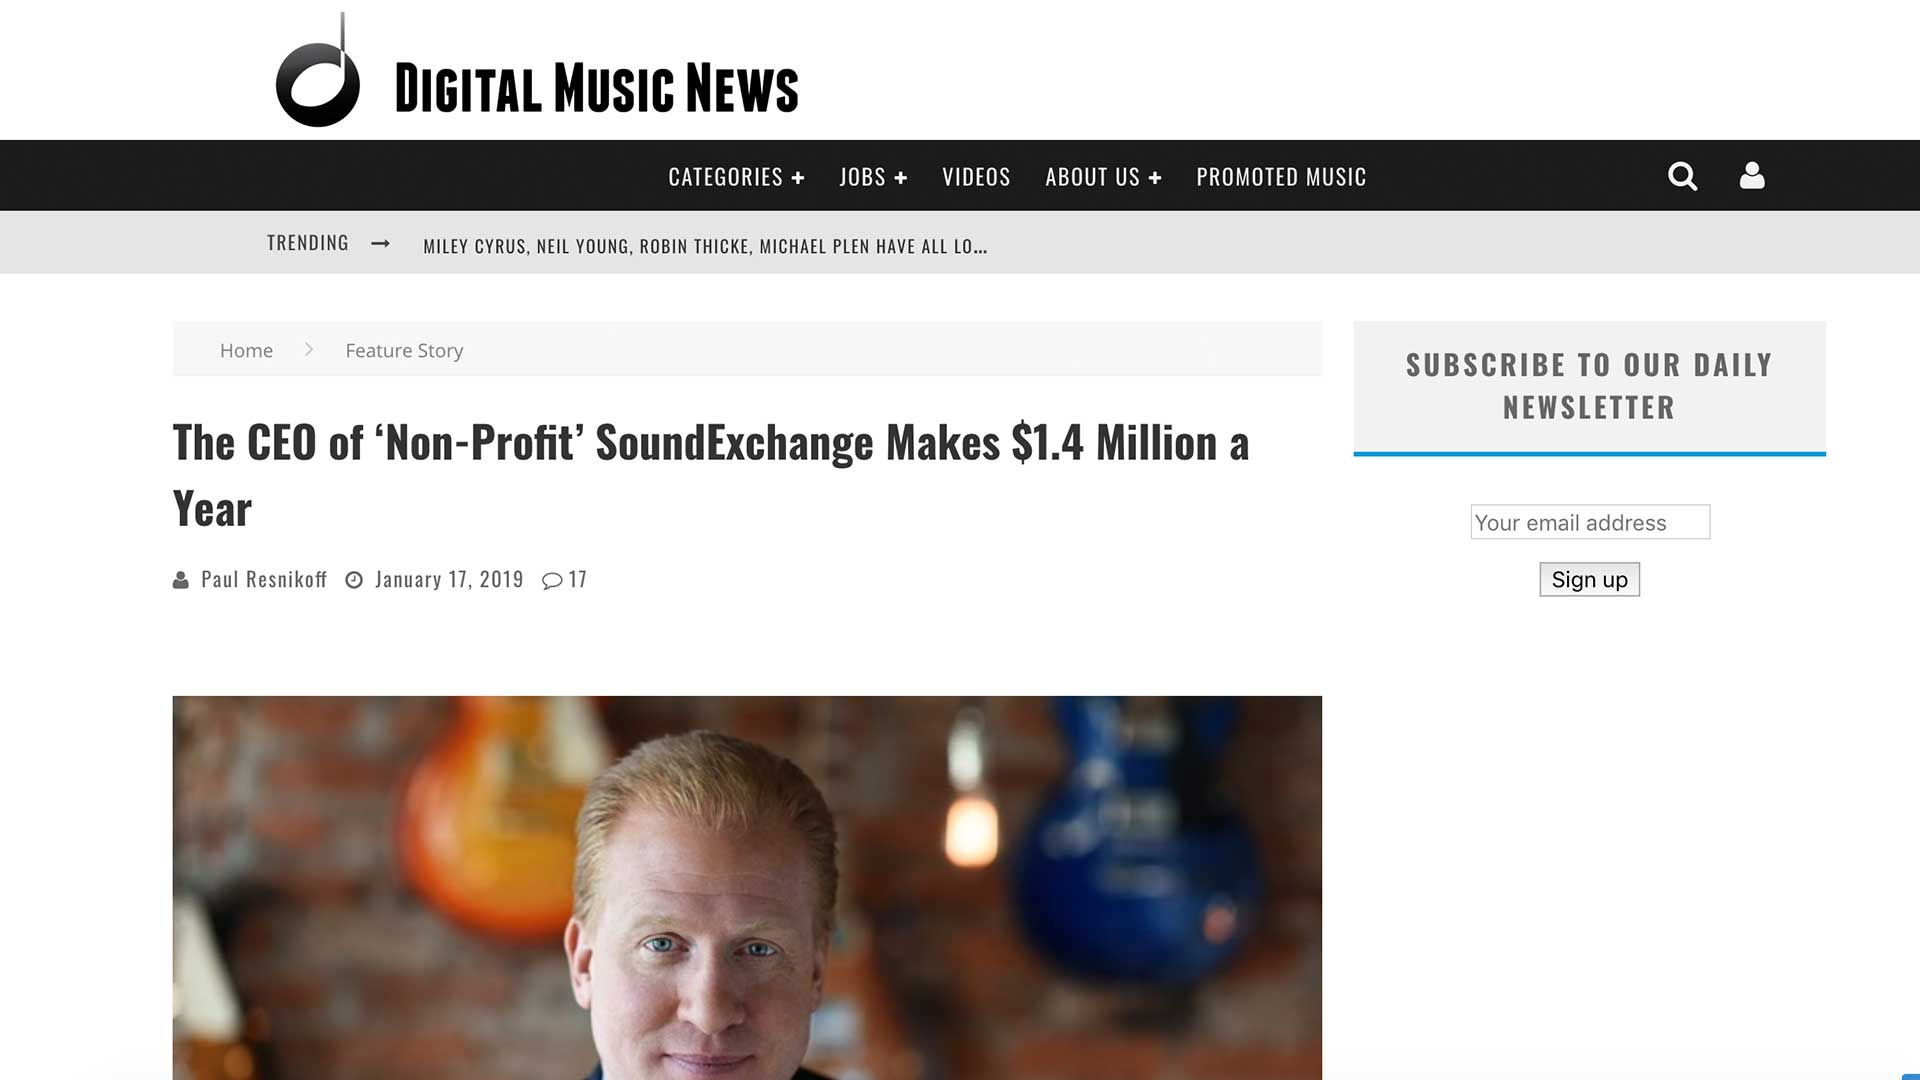 Fairness Rocks News The CEO of 'Non-Profit' SoundExchange Makes $1.4 Million a Year